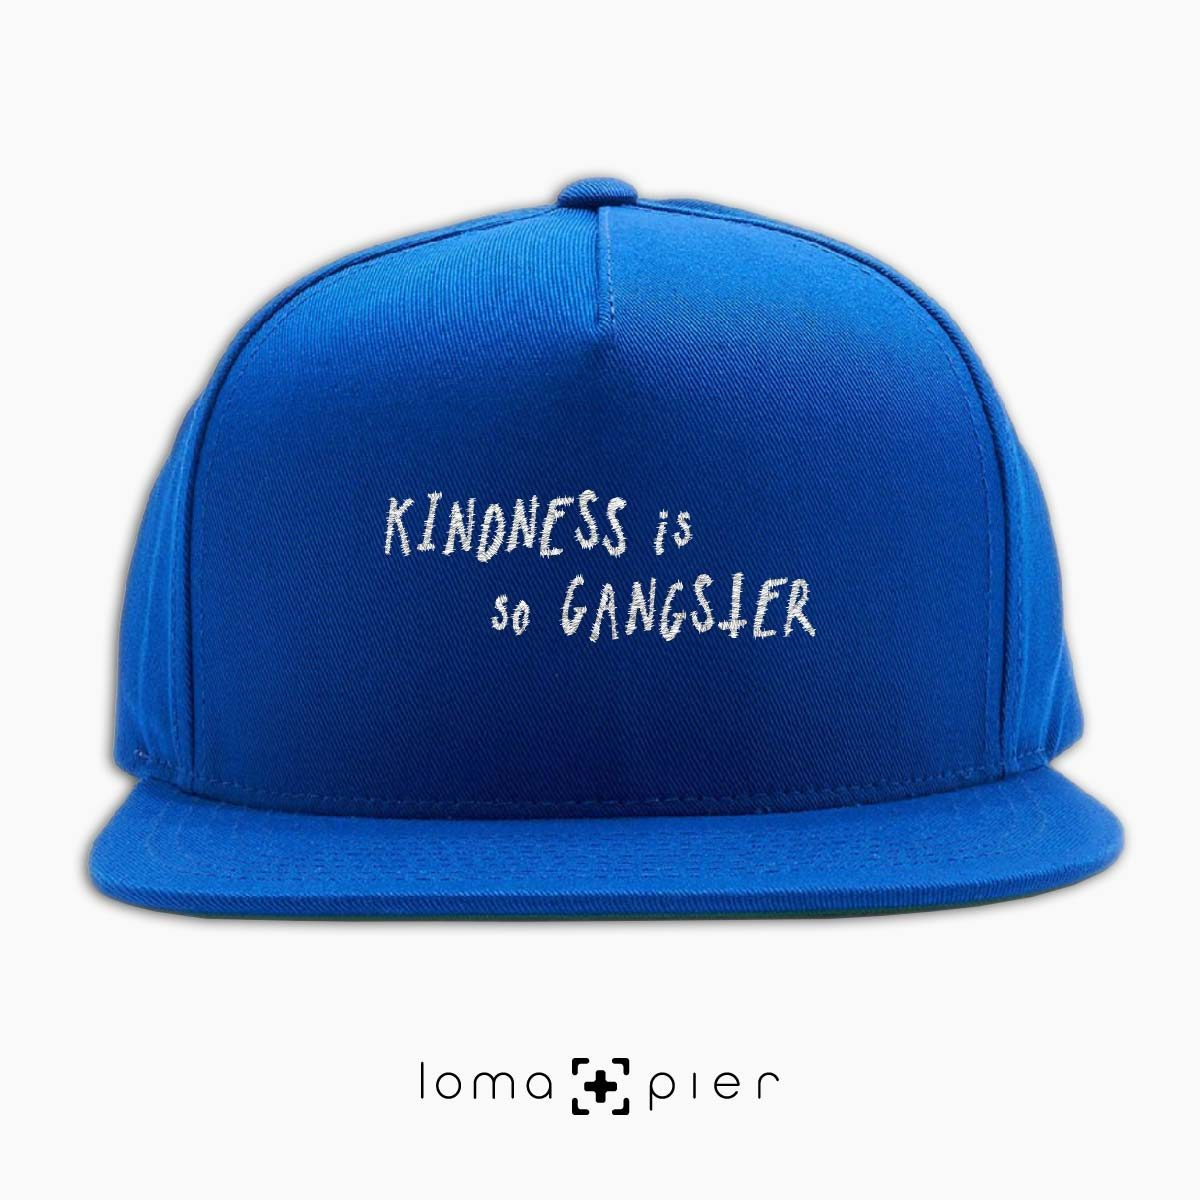 KINDNESS IS SO GANGSTER typography embroidered on a royal blue classic snapback hat with white thread by loma+pier hat store